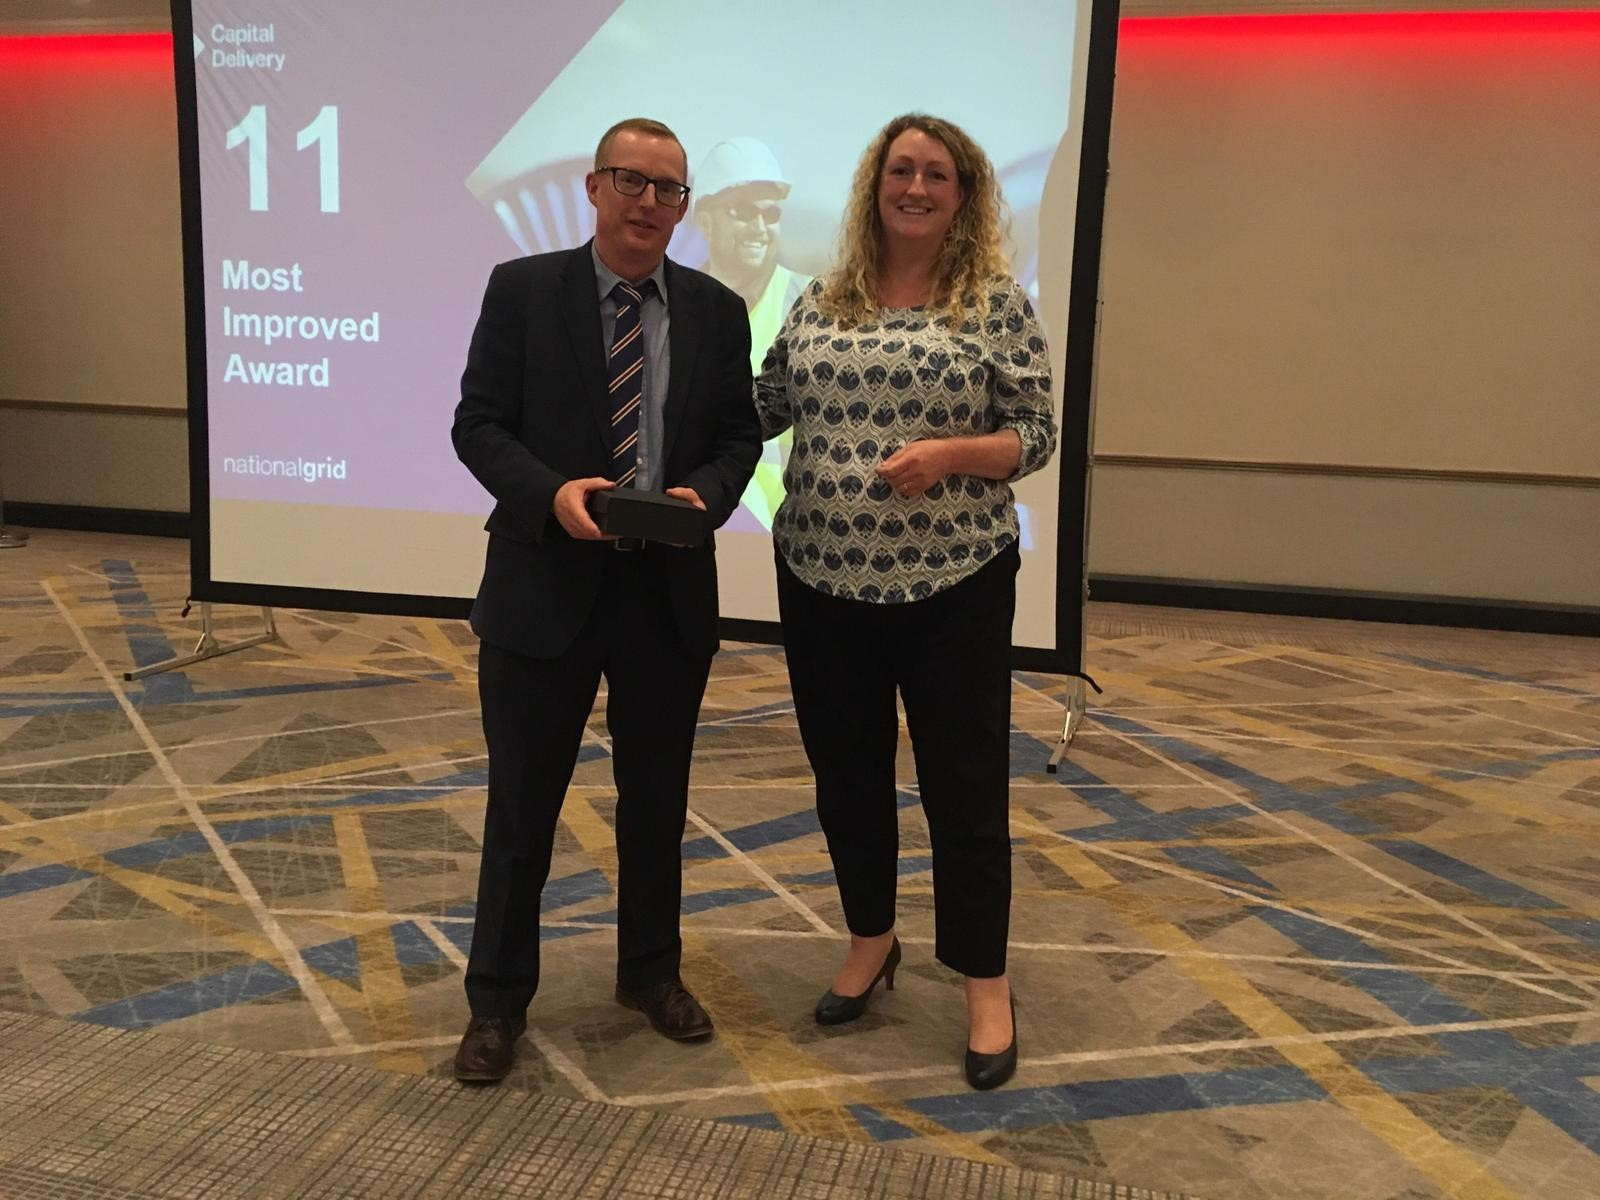 National Grid Most Improved Award 2019